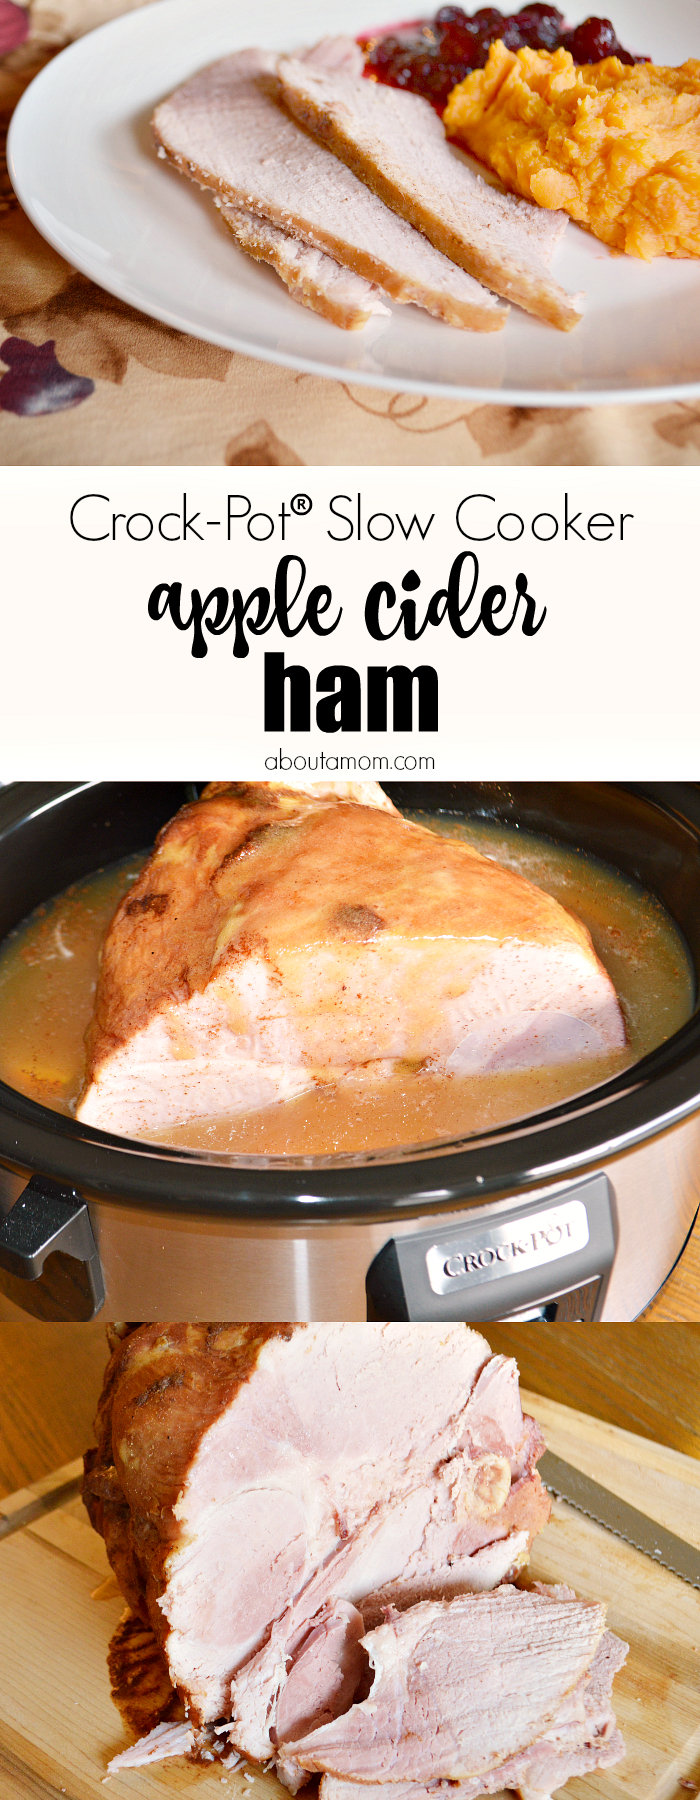 how to cook a ham in a crock pot